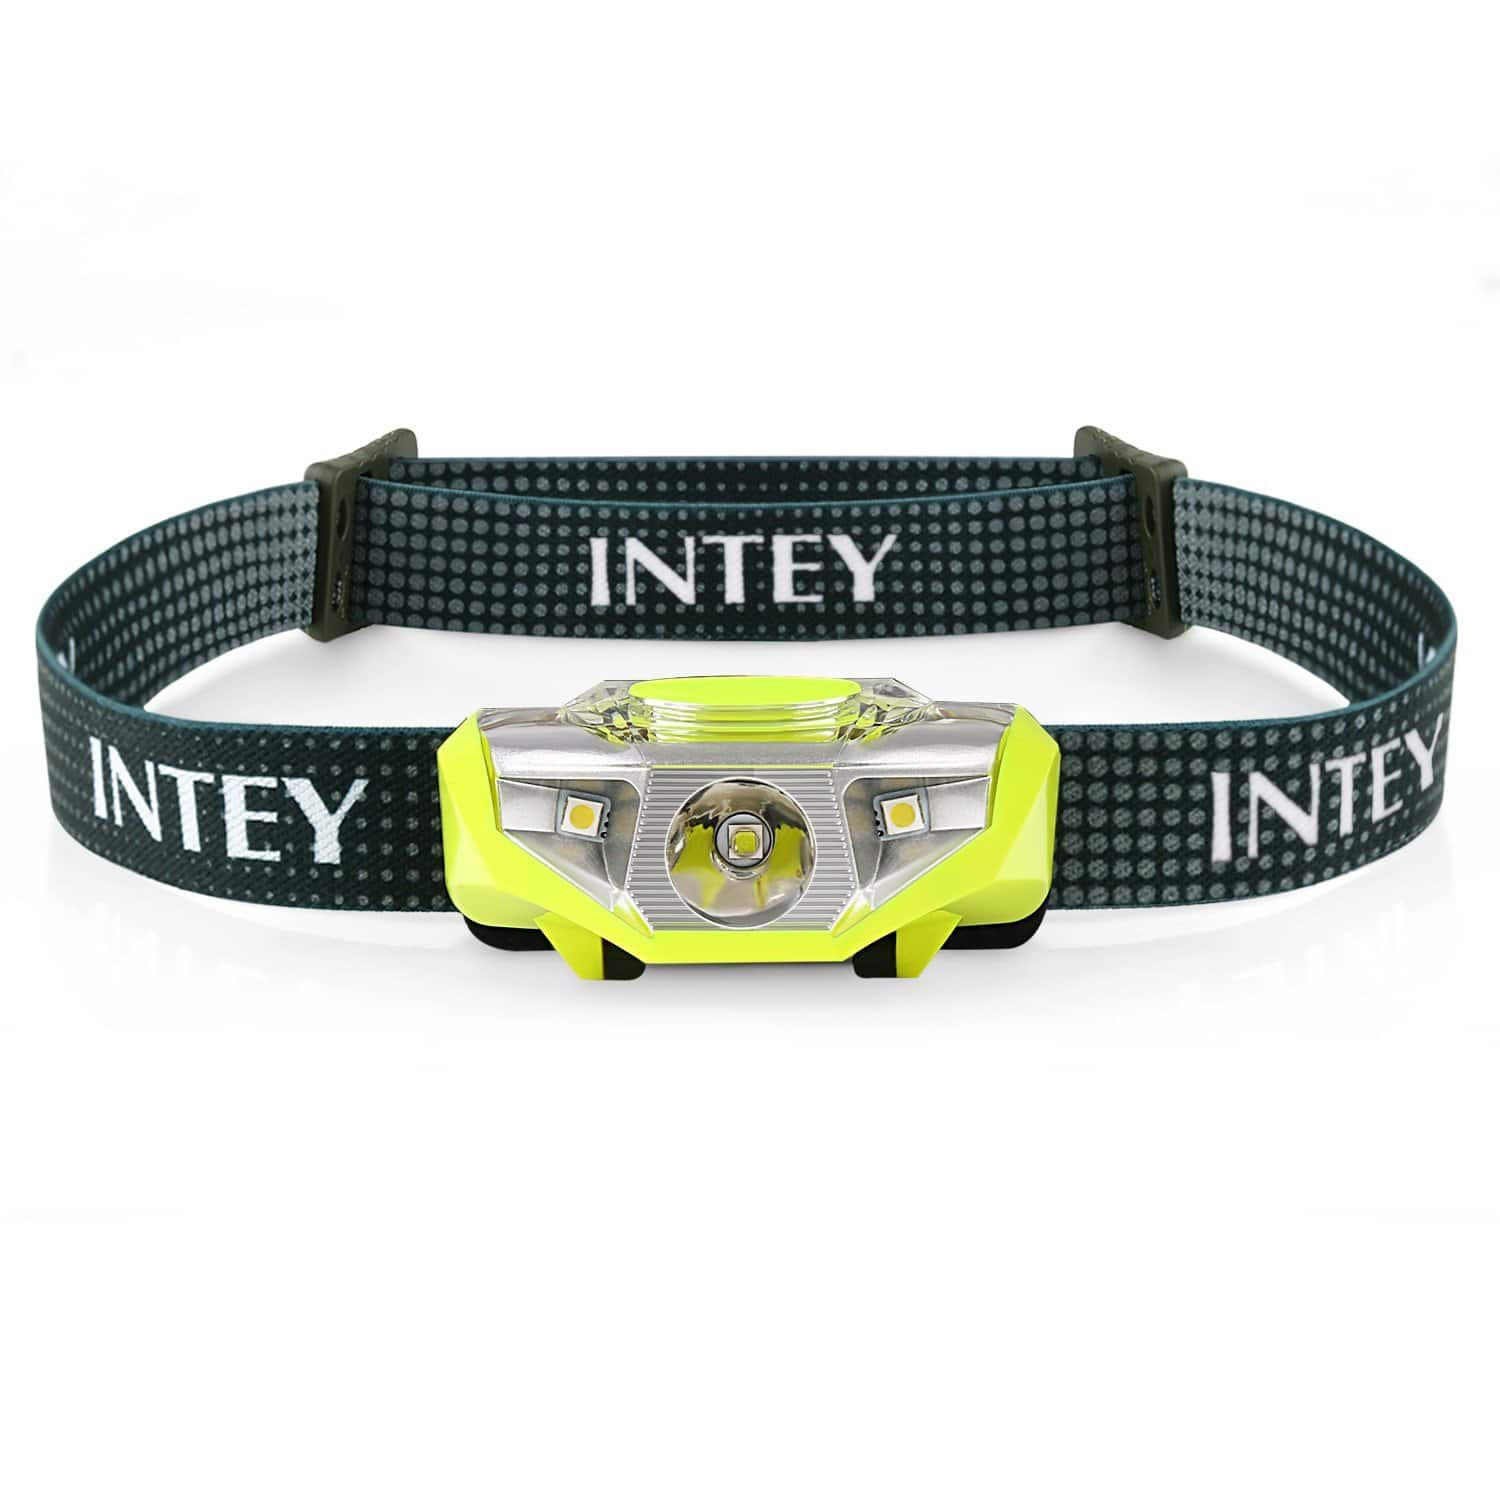 INTEY Headlamp IPX5 Waterproof Flashlight 6 Modes with Spotlight and Floodlight for $3.49 + FSSS